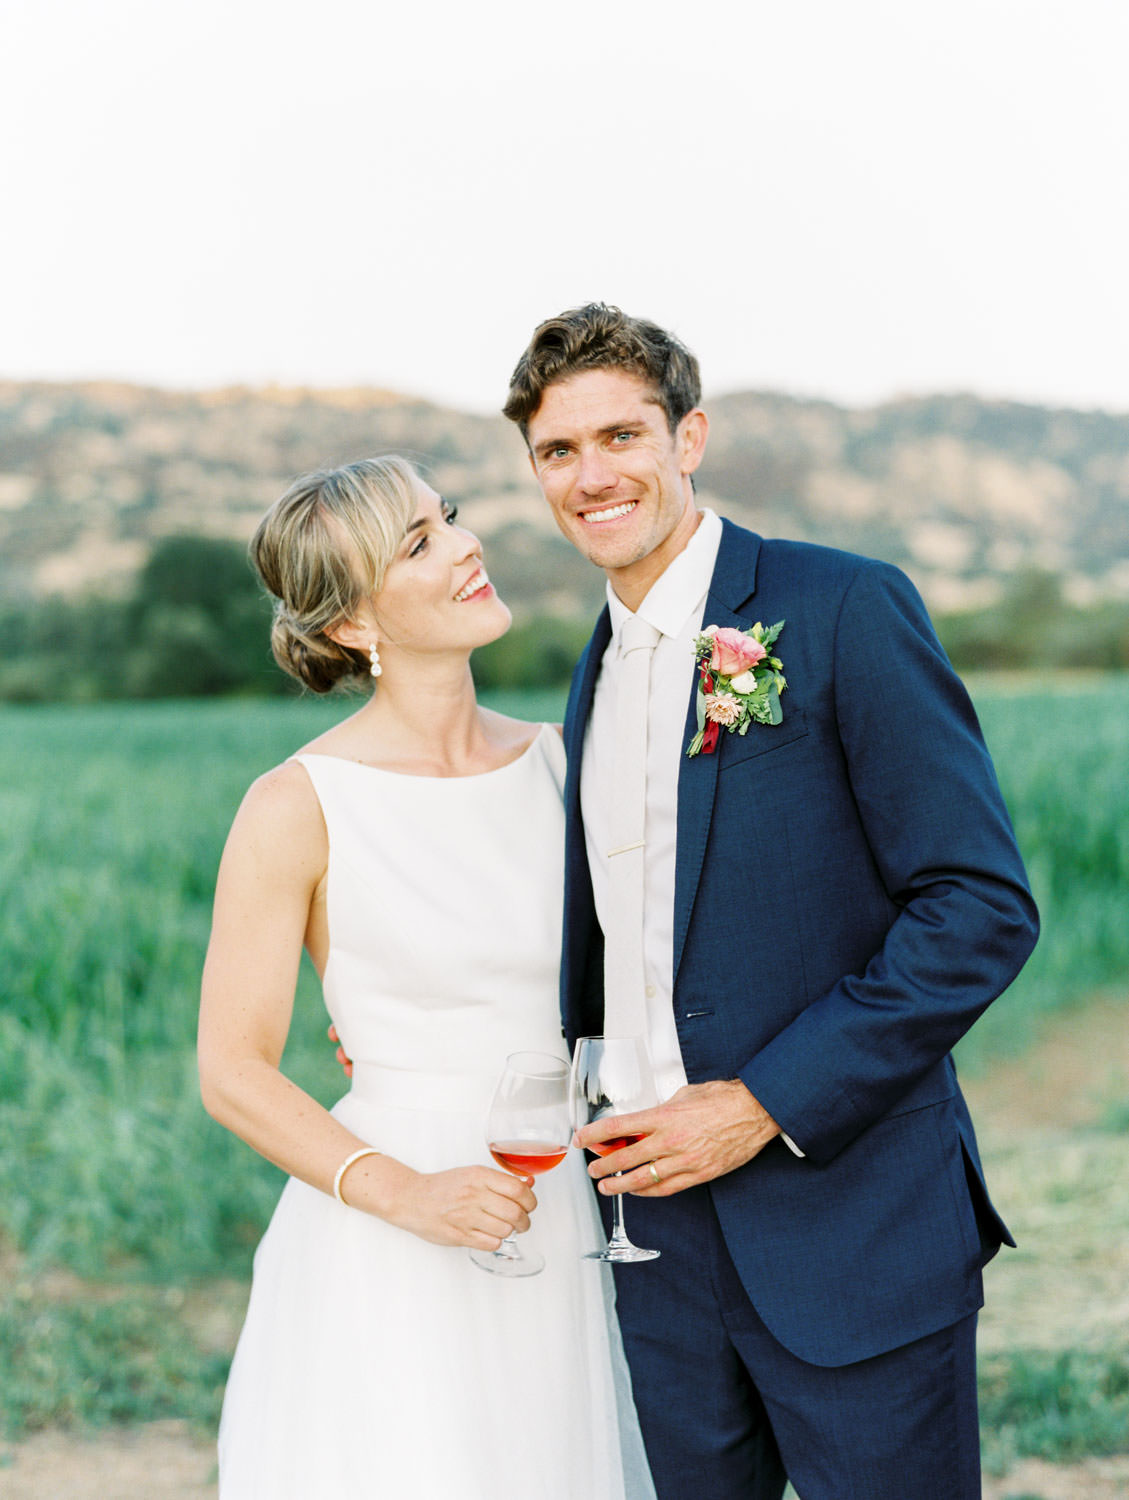 Bride smiling at the groom. Couple holding rose drinks with fields and mountains in the background. Full Belly Farm reception by film photographer Cavin Elizabeth Photography